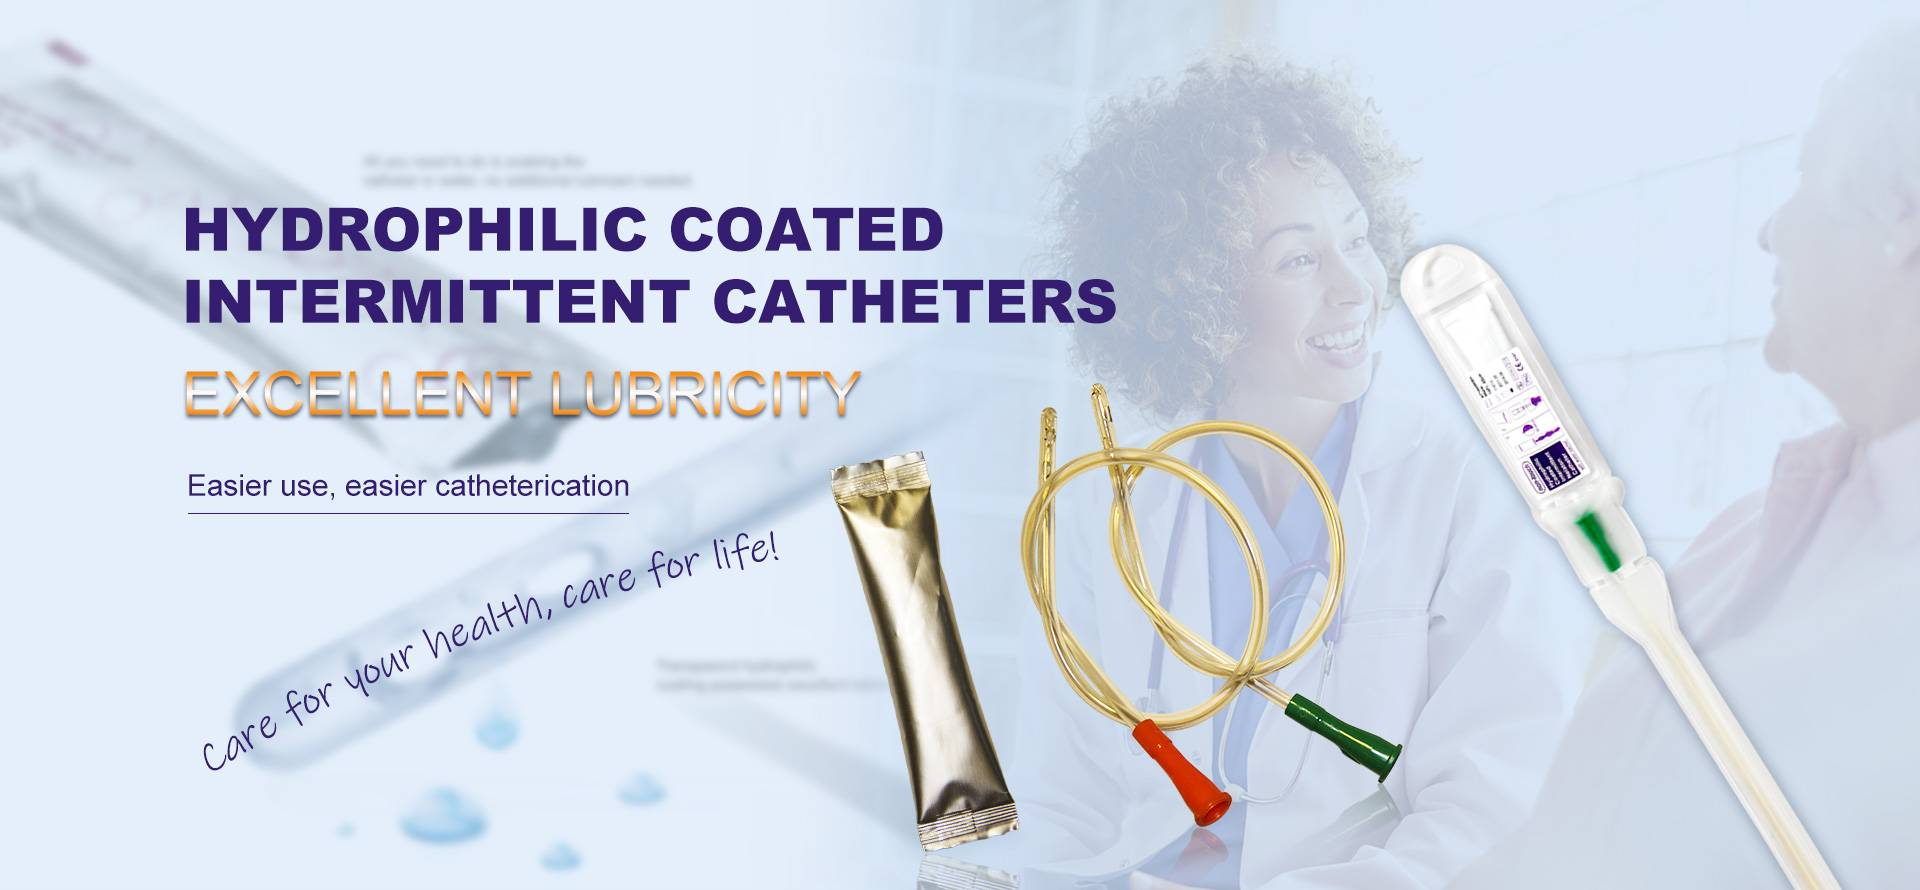 Hyperophilic coated Intermittent Catheters